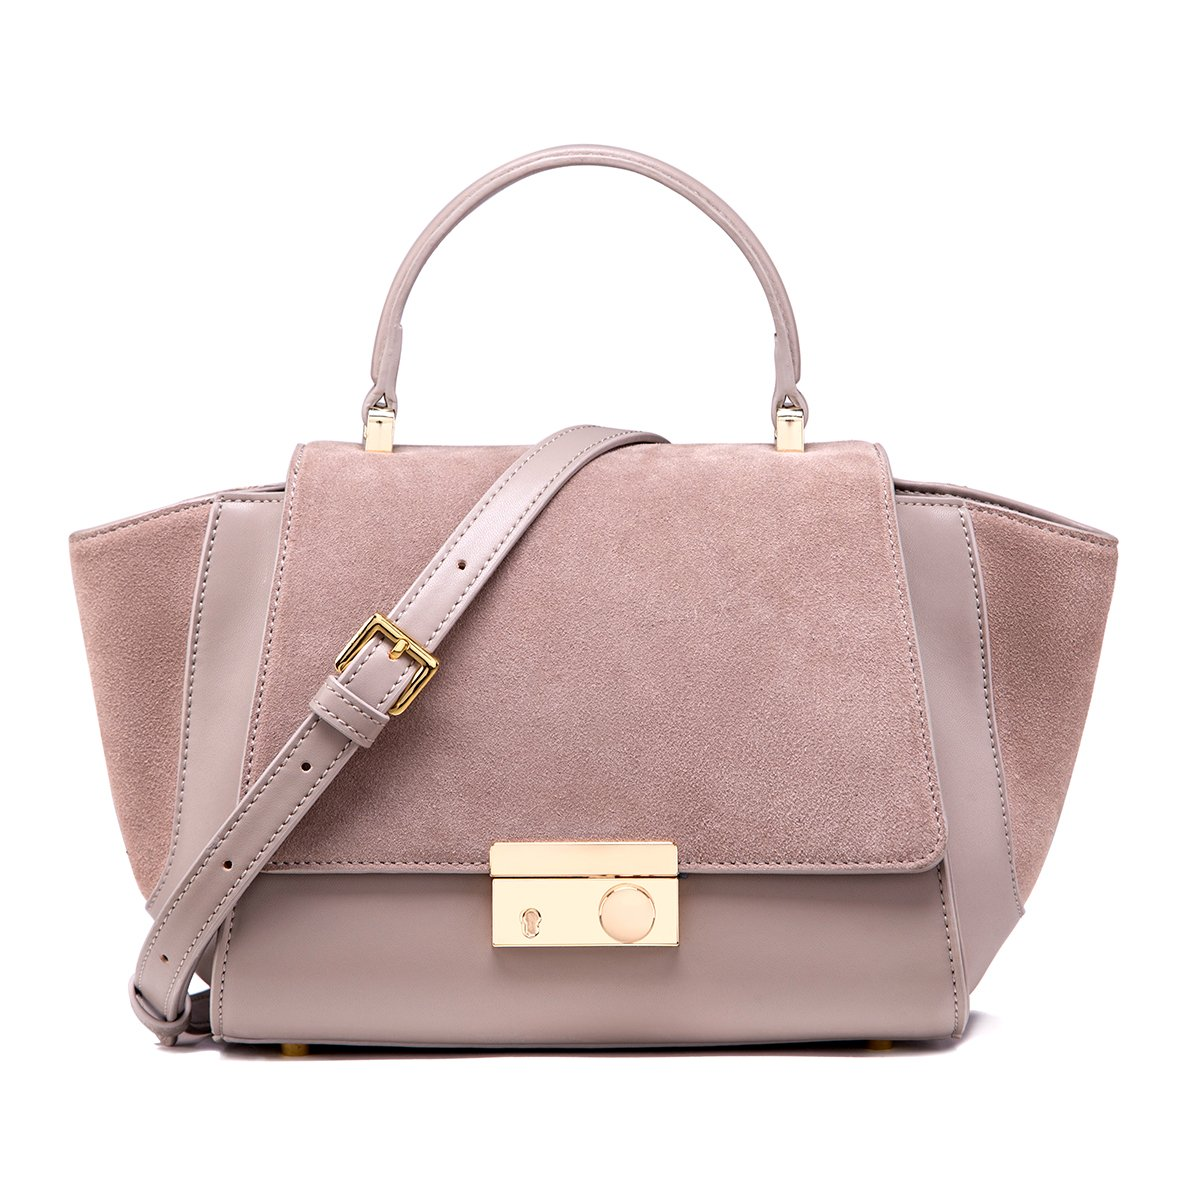 Ladies Cute Purses Designer Leather Grey Handbags with Adjustable Shoulder Strap by LA'FESTIN